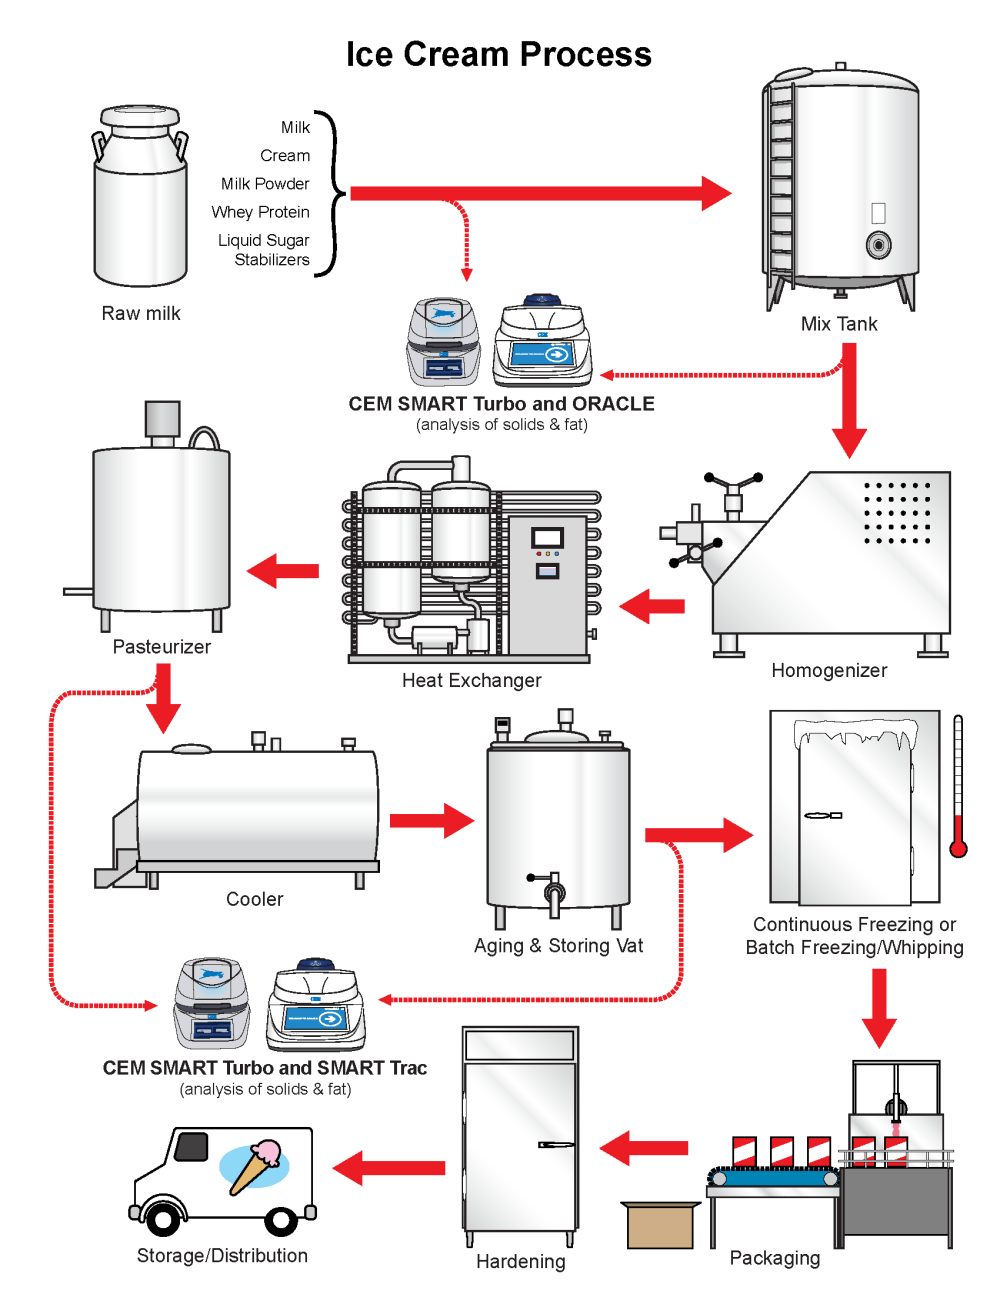 medium resolution of the ice cream flow chart gives precise details on the production process of ice cream products as well as an explanation of where cem process products can